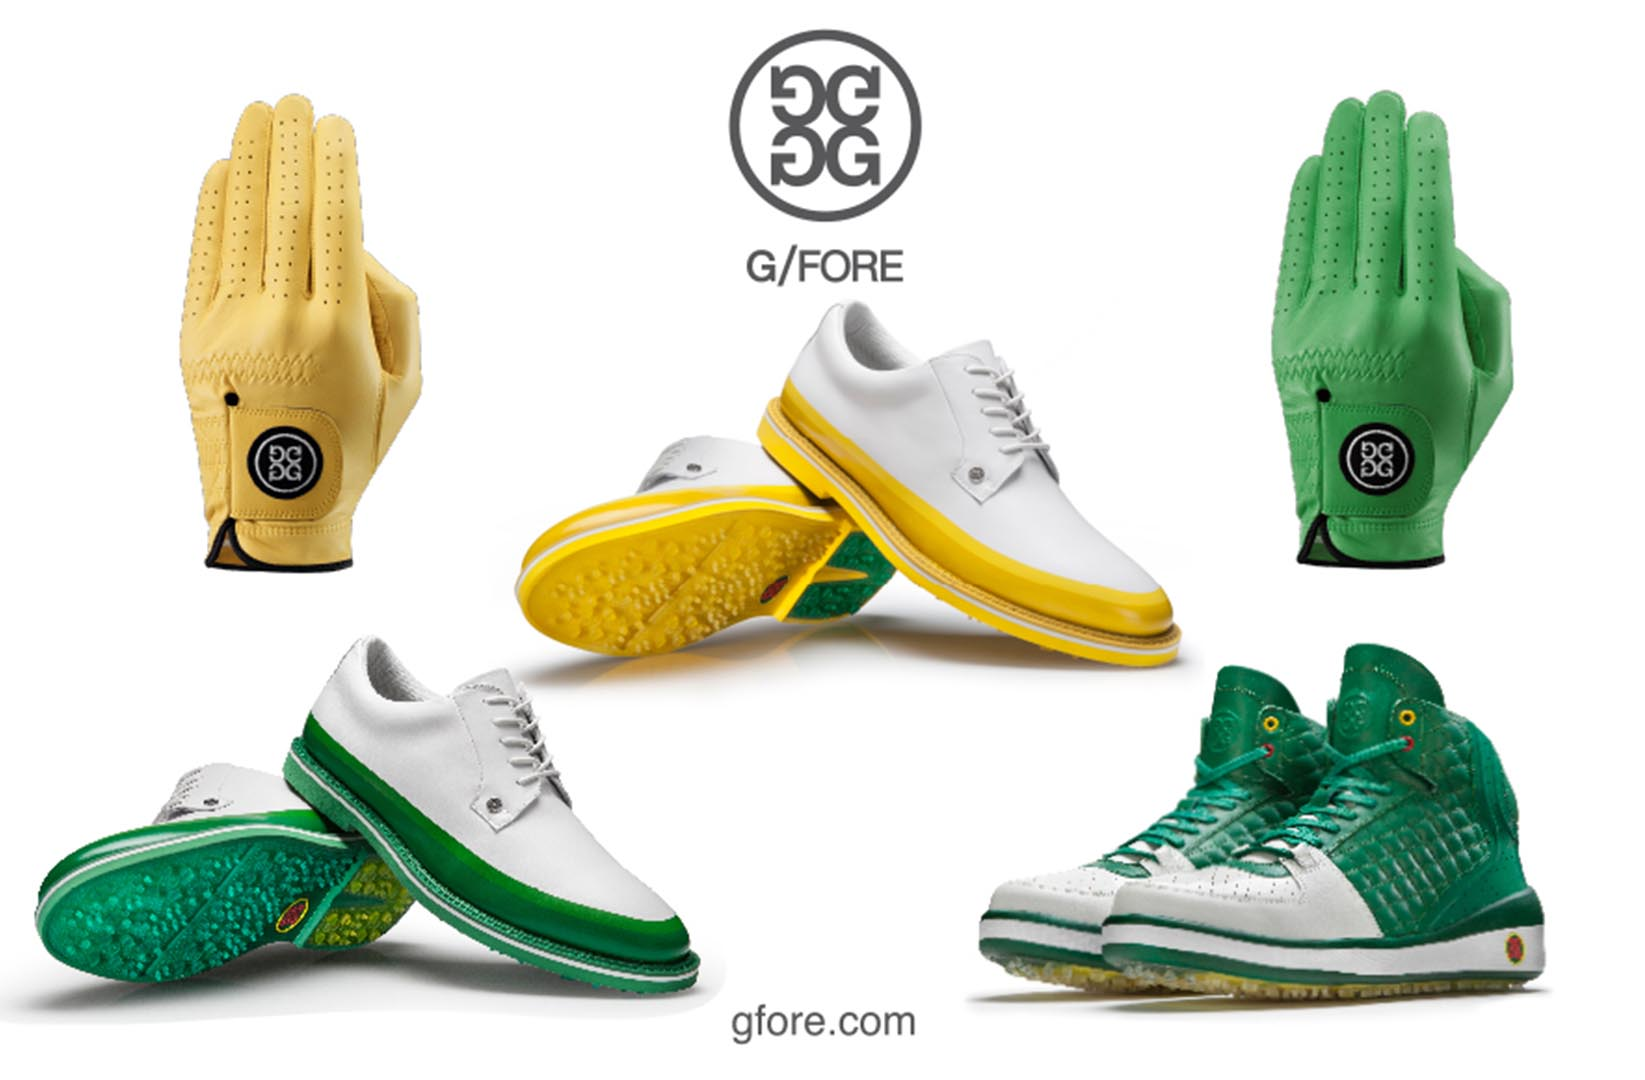 GFORE Collection